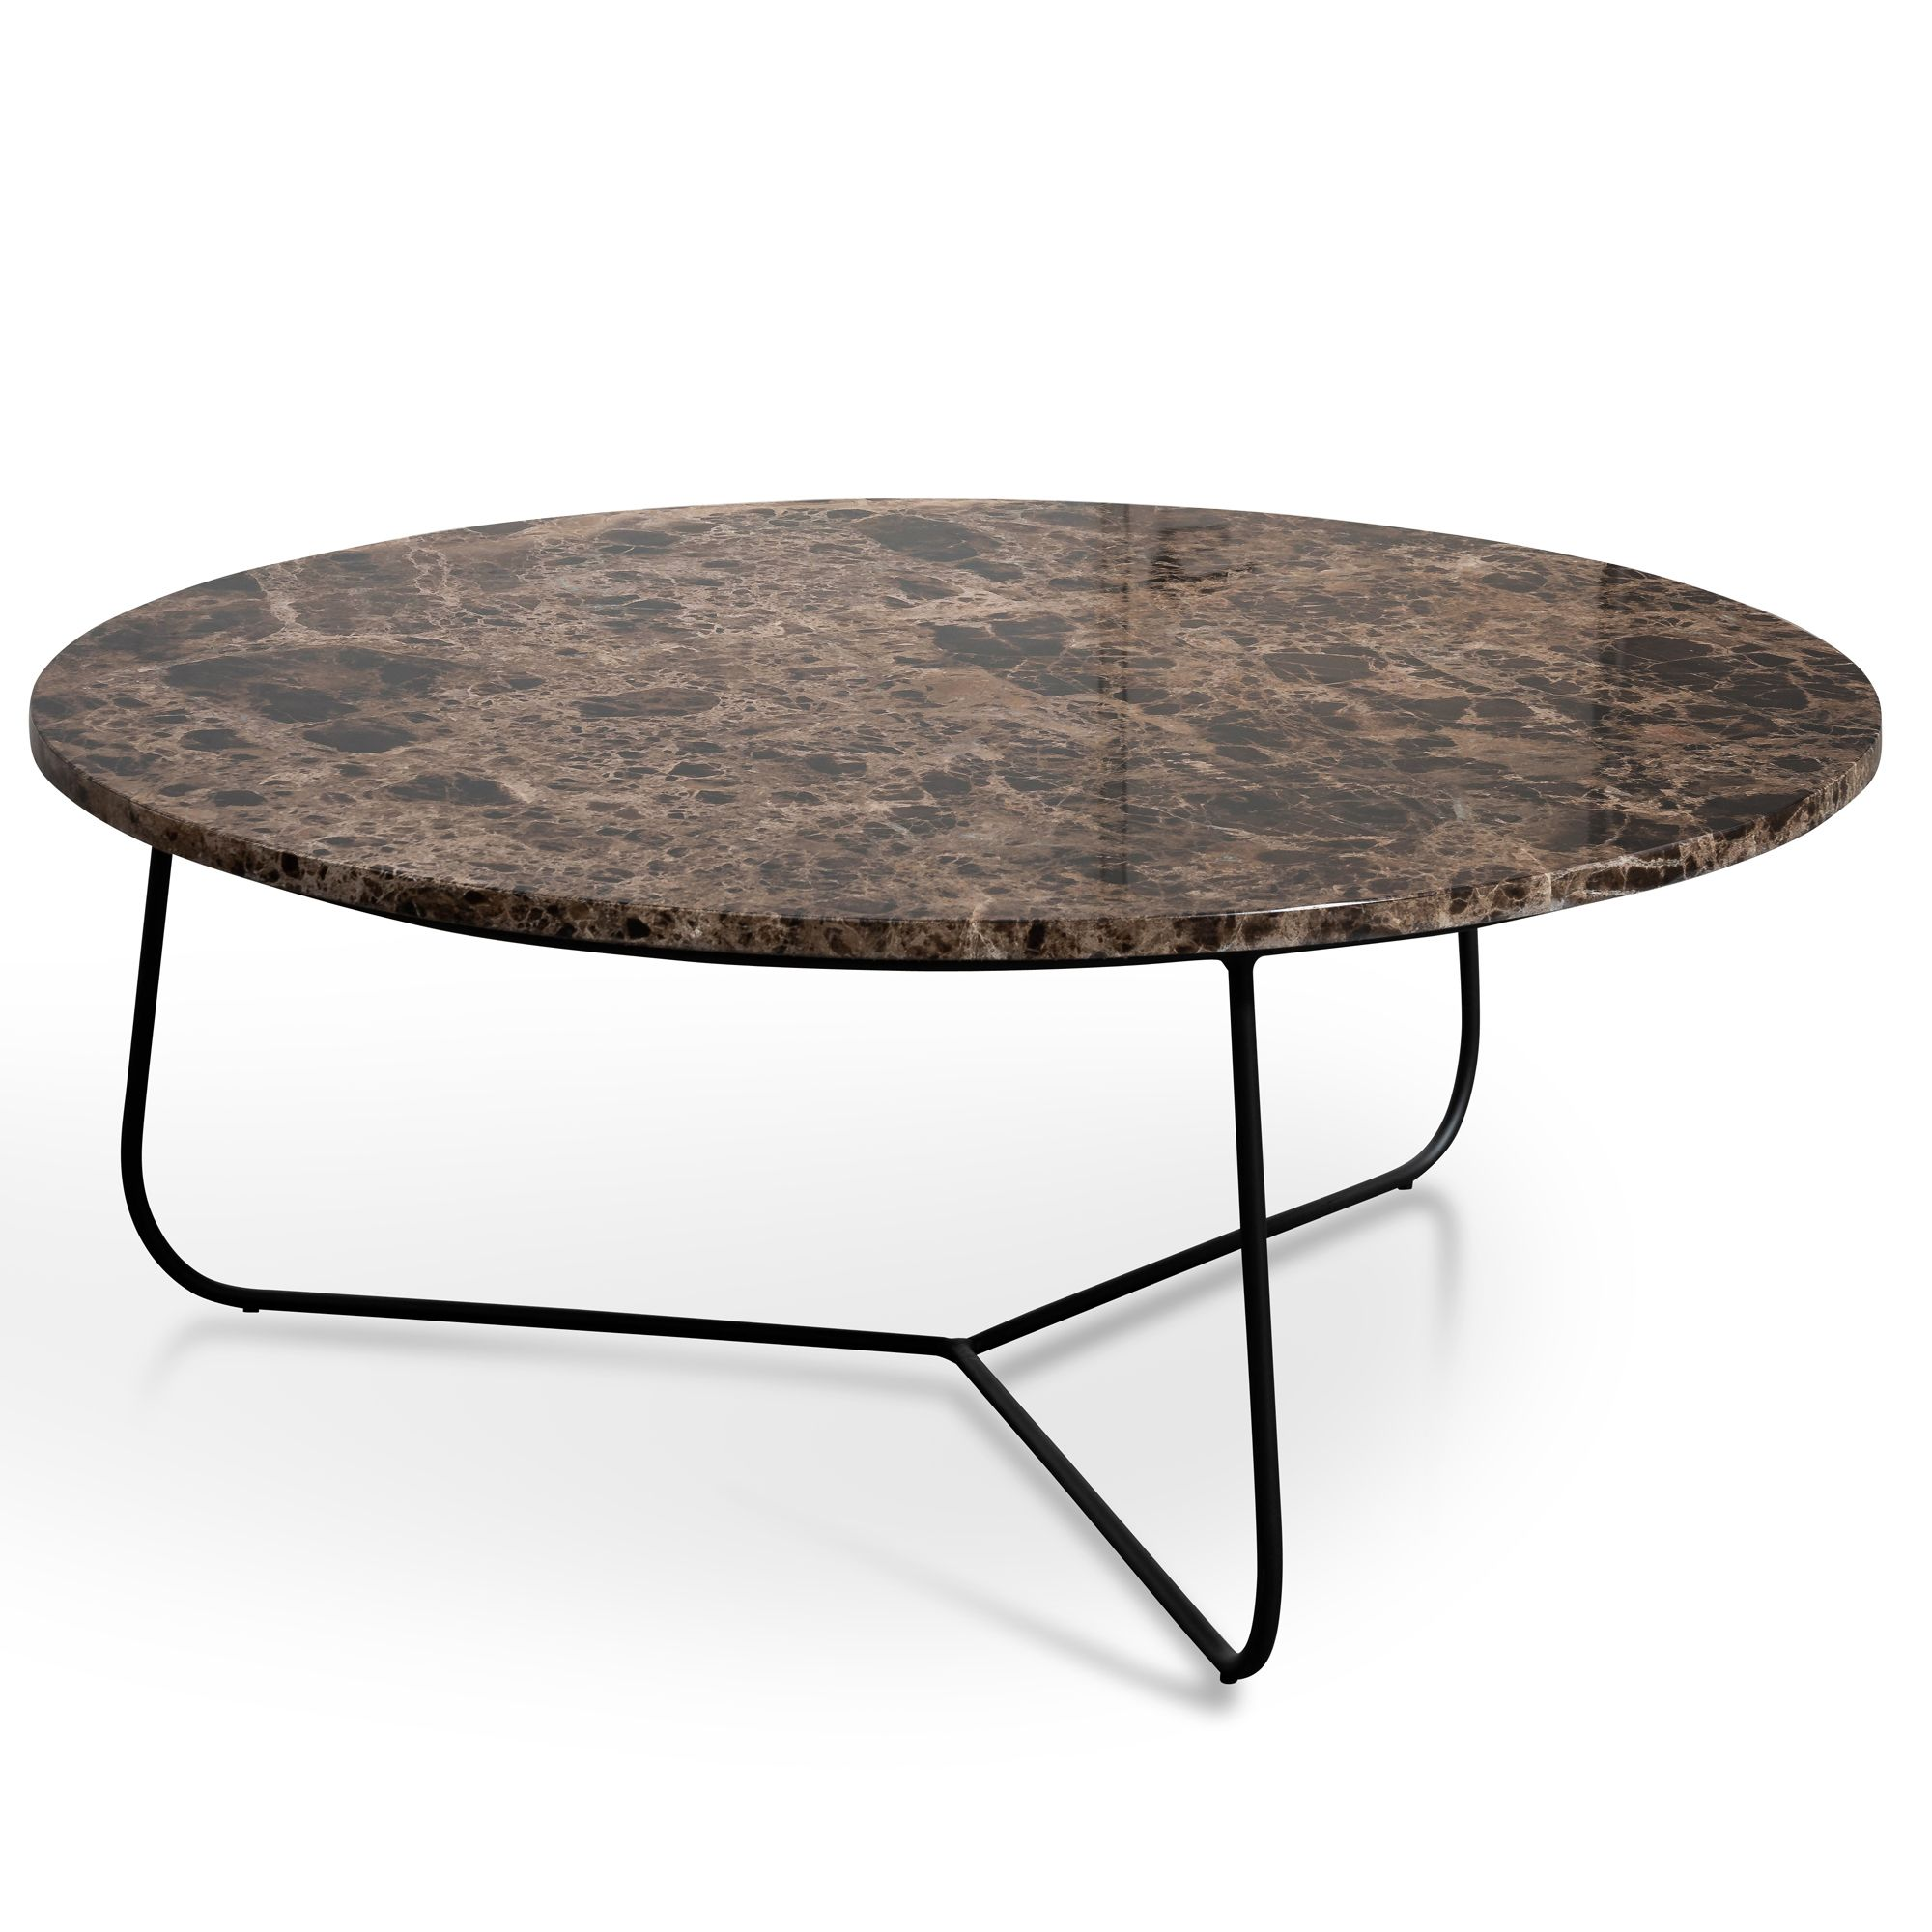 The Glacier Brown Marble Coffee Table Showcases The Understated